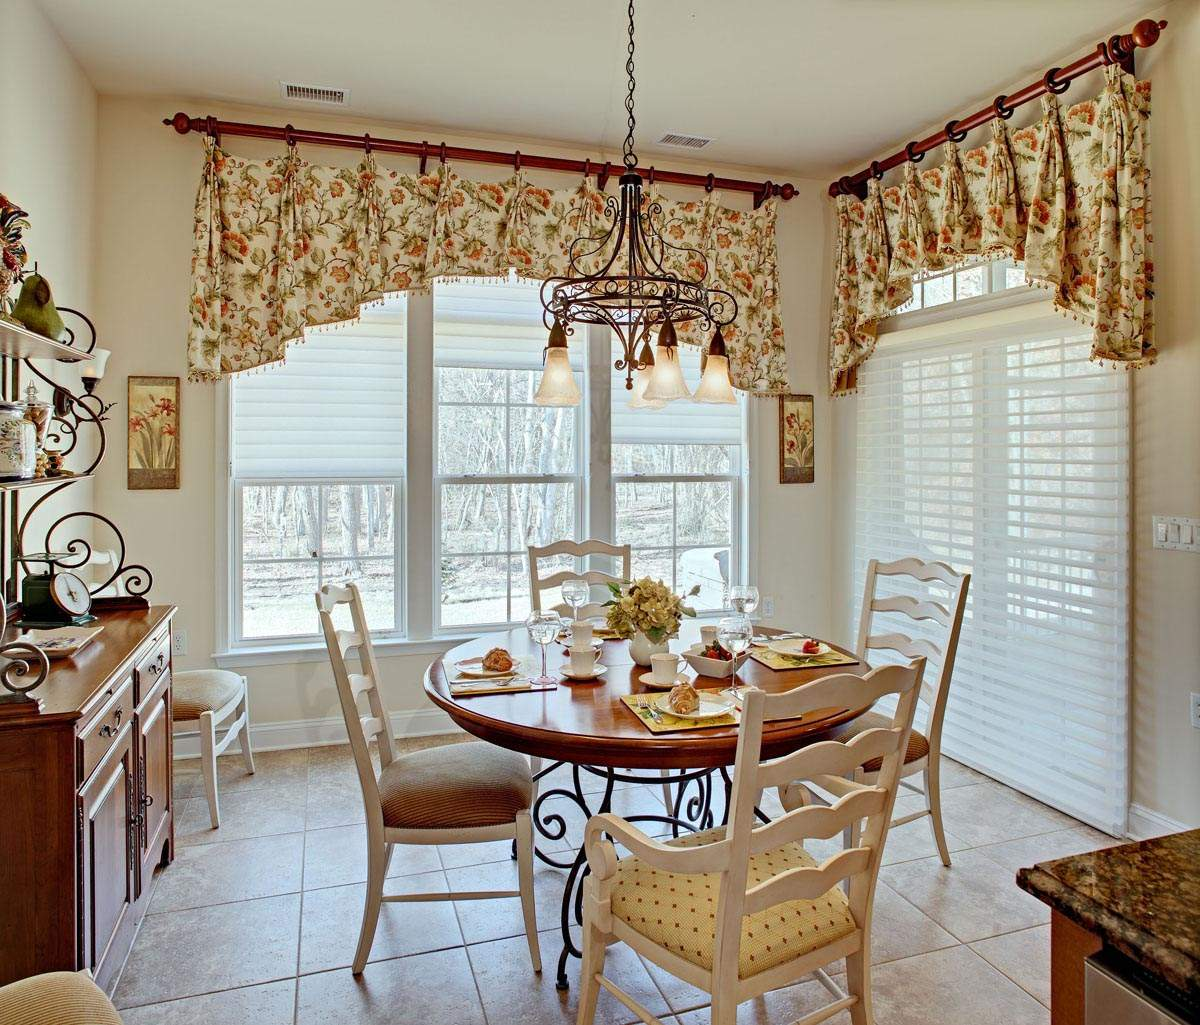 07 - country kitchen curtains and valances